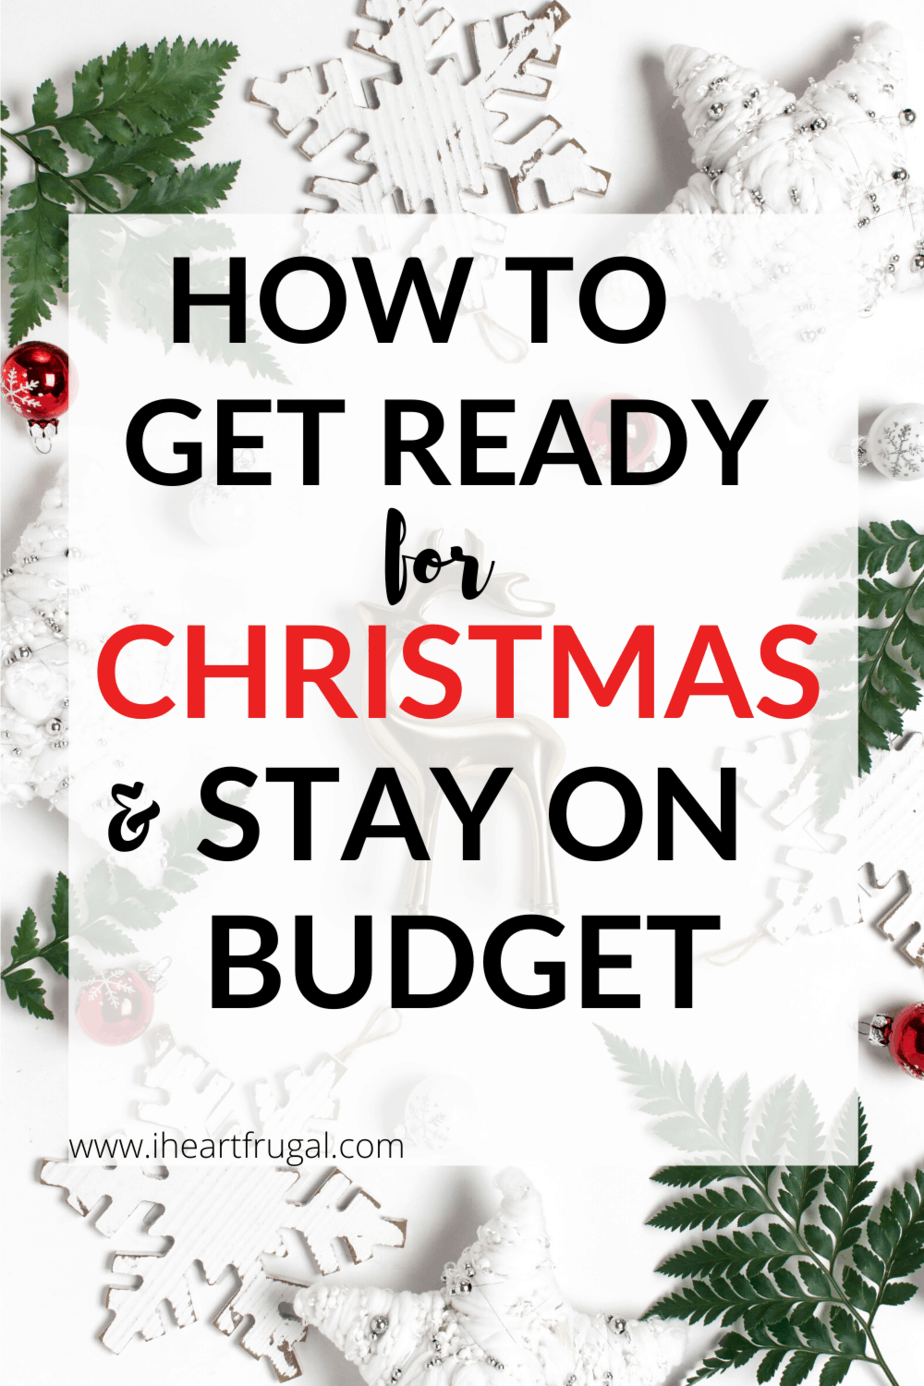 How to Get Ready for Christmas and Stay on Budget